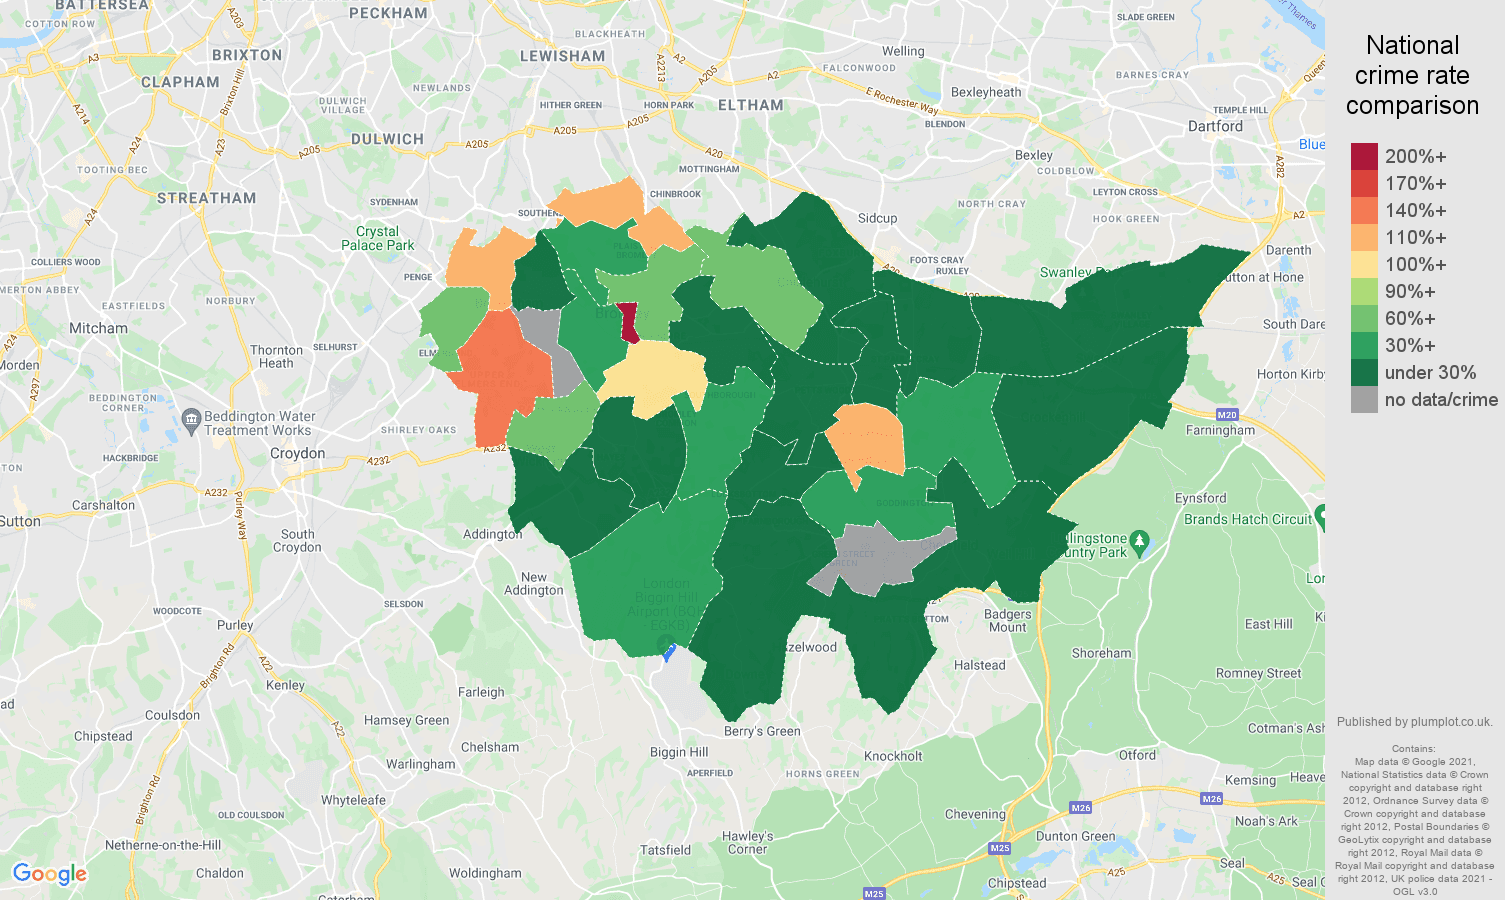 Bromley theft from the person crime rate comparison map